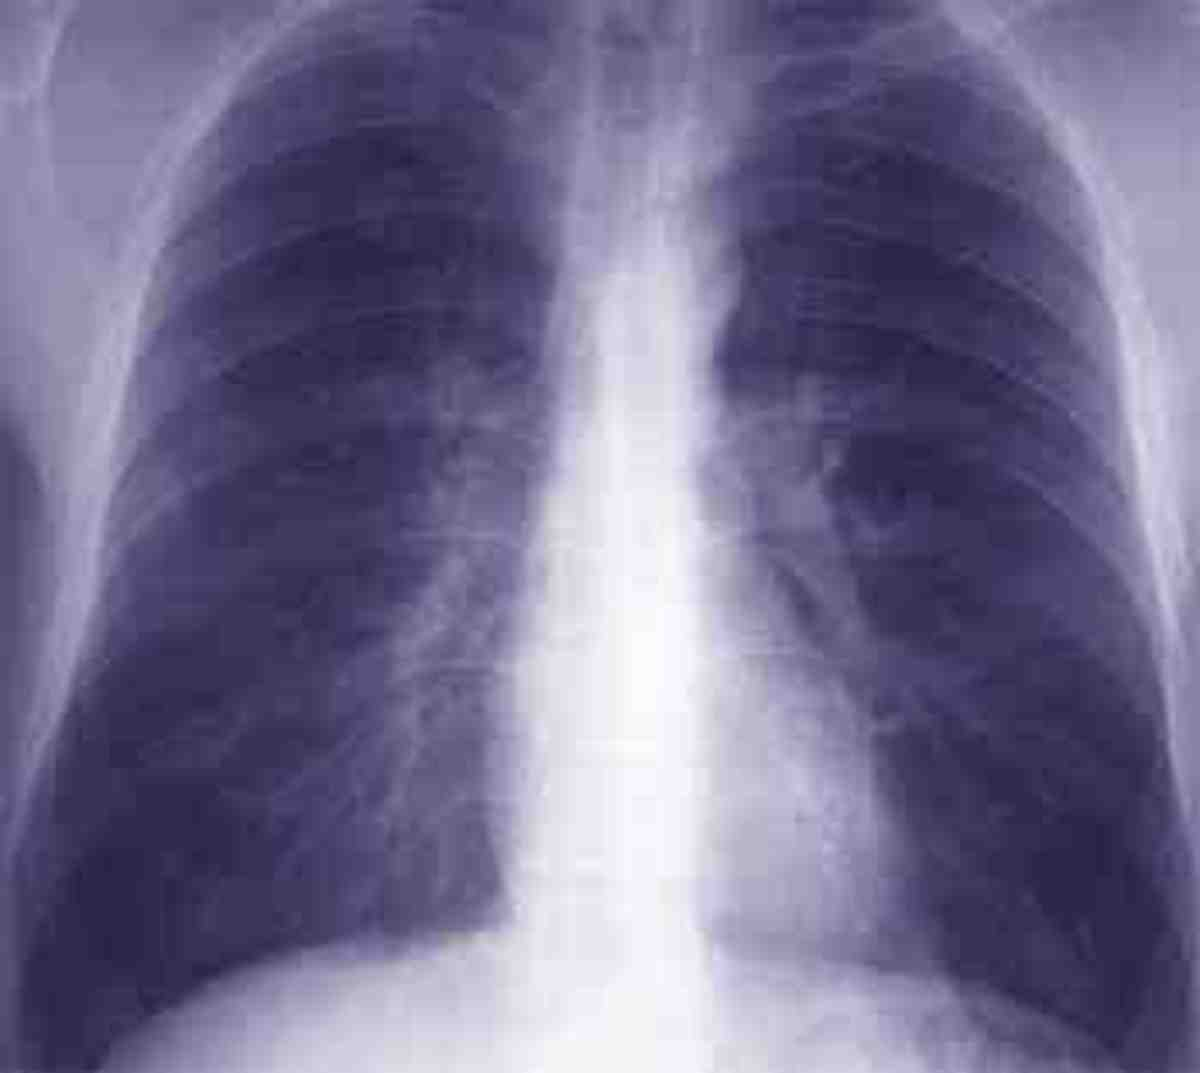 X-ray Of Bronchitis in Lungs Source globalrph.com